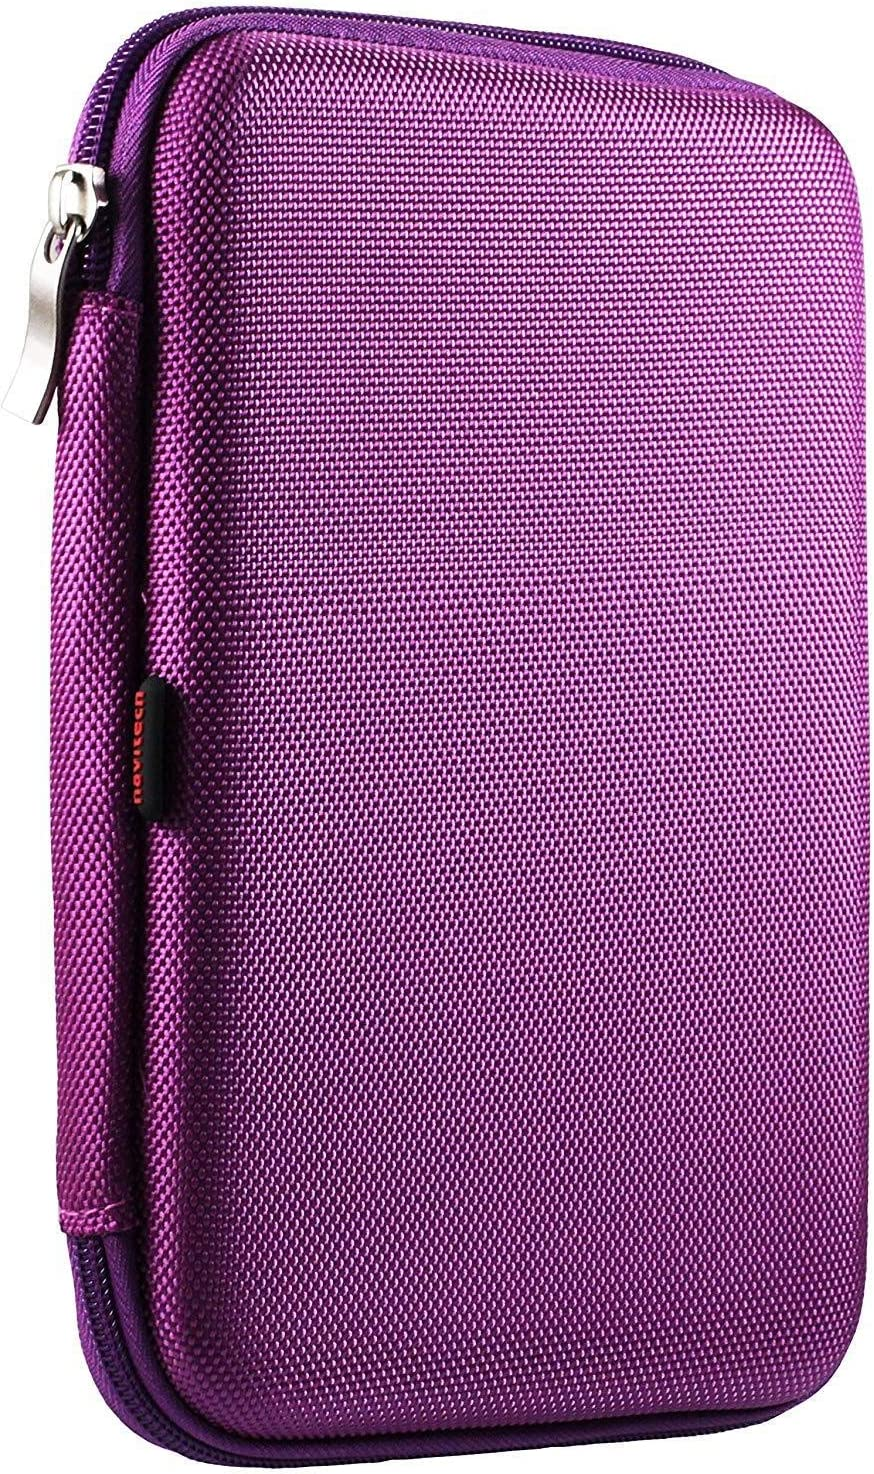 Navitech Purple Hard Protective EVA Case Cover Compatible with The Wacom Intuos Graphics Drawing Tablet 7.9x 6.3